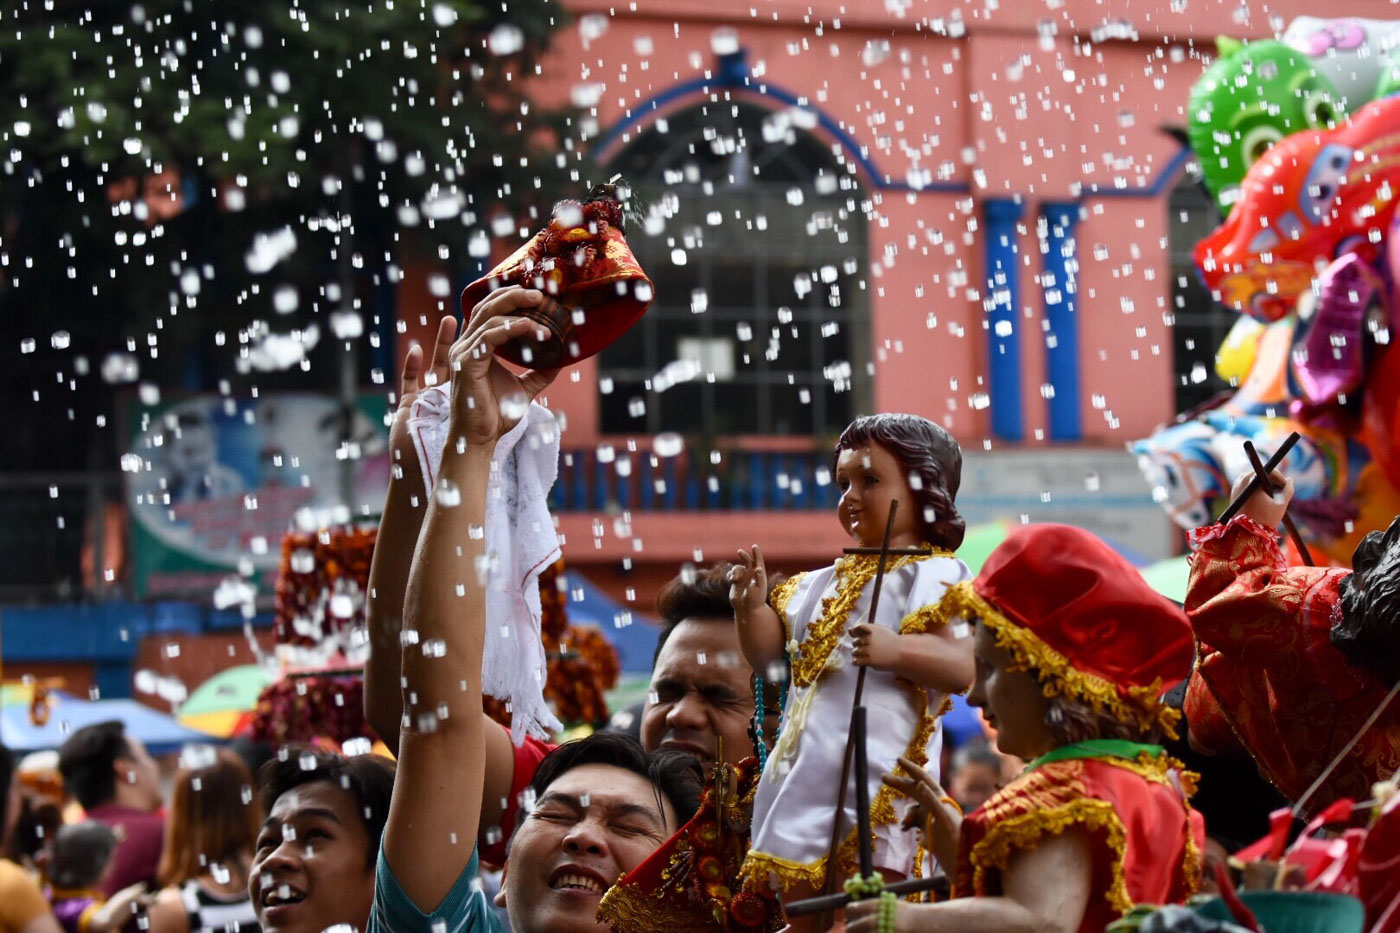 POPULAR DEVOTION. The Santo Niu00f1o is the oldest symbol of the Christian faith in the Philippines, says Manila Archbishop Luis Antonio Cardinal Tagle. Photo by Angie de Silva/Rappler